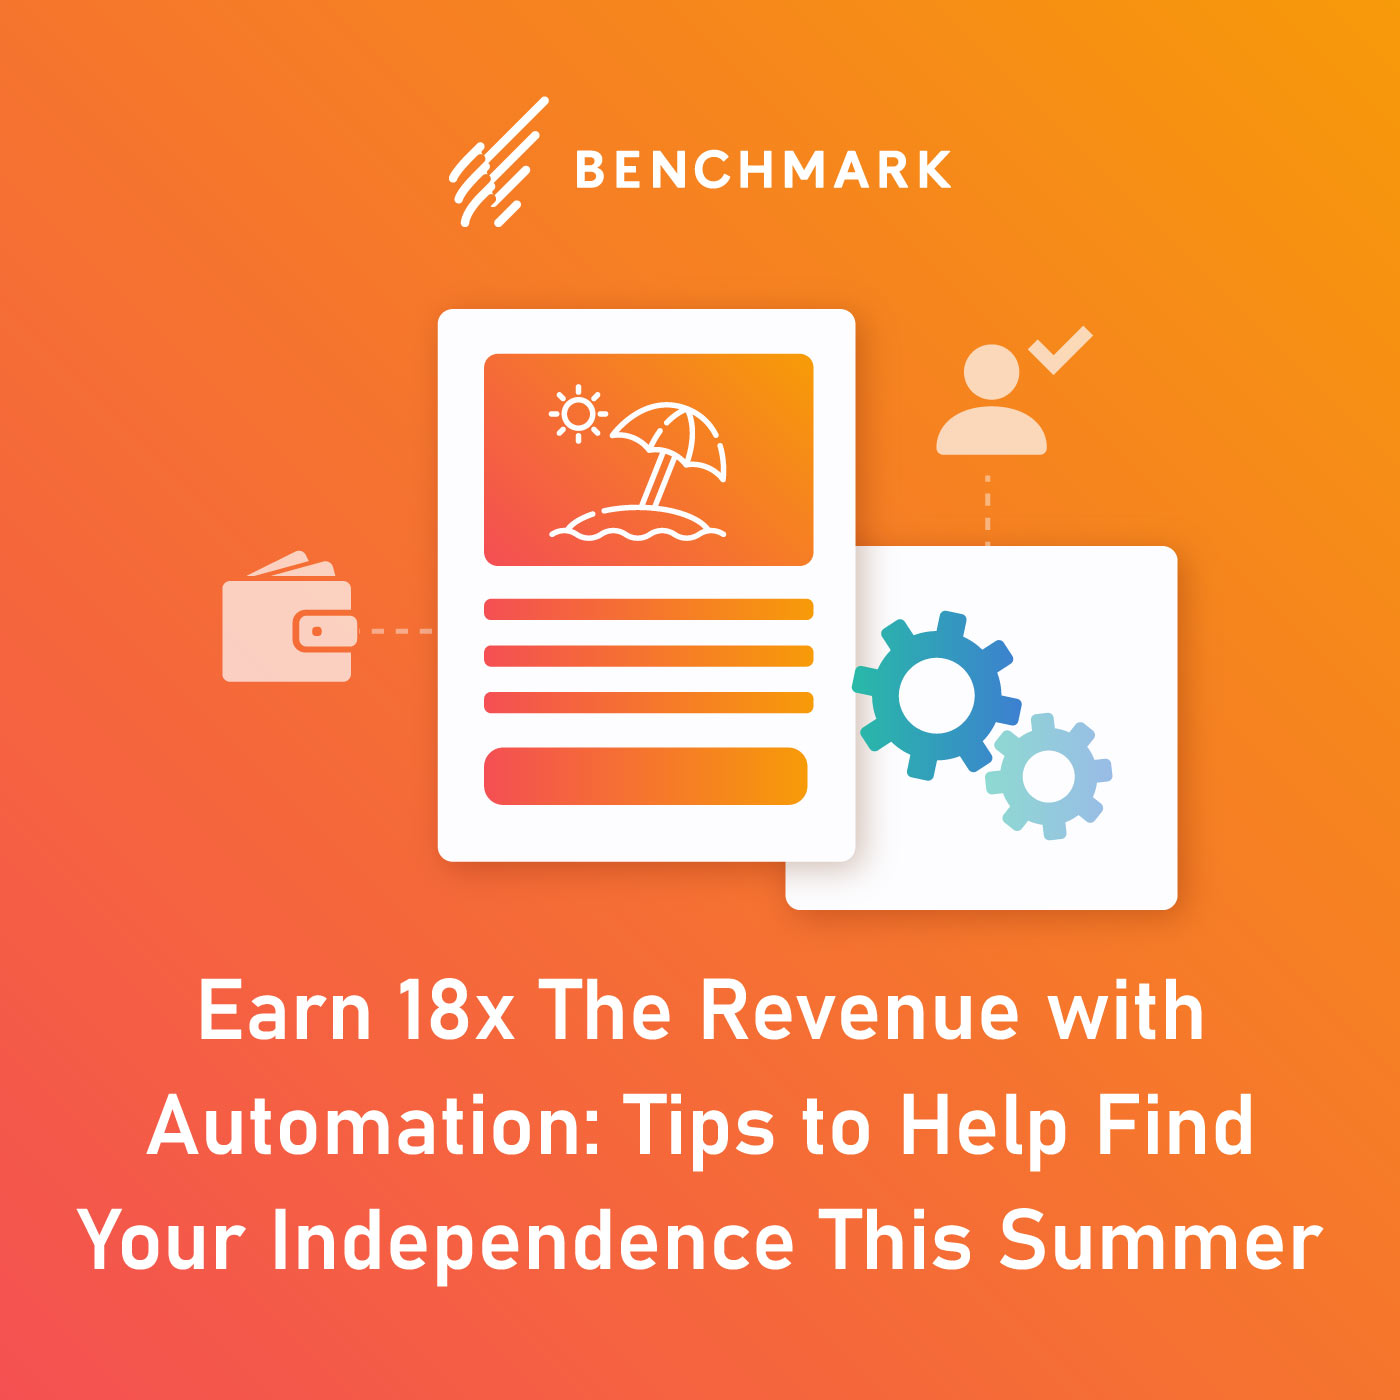 Earn 18x The Revenue with Automation: Tips to Help Find Your Independence This Summer